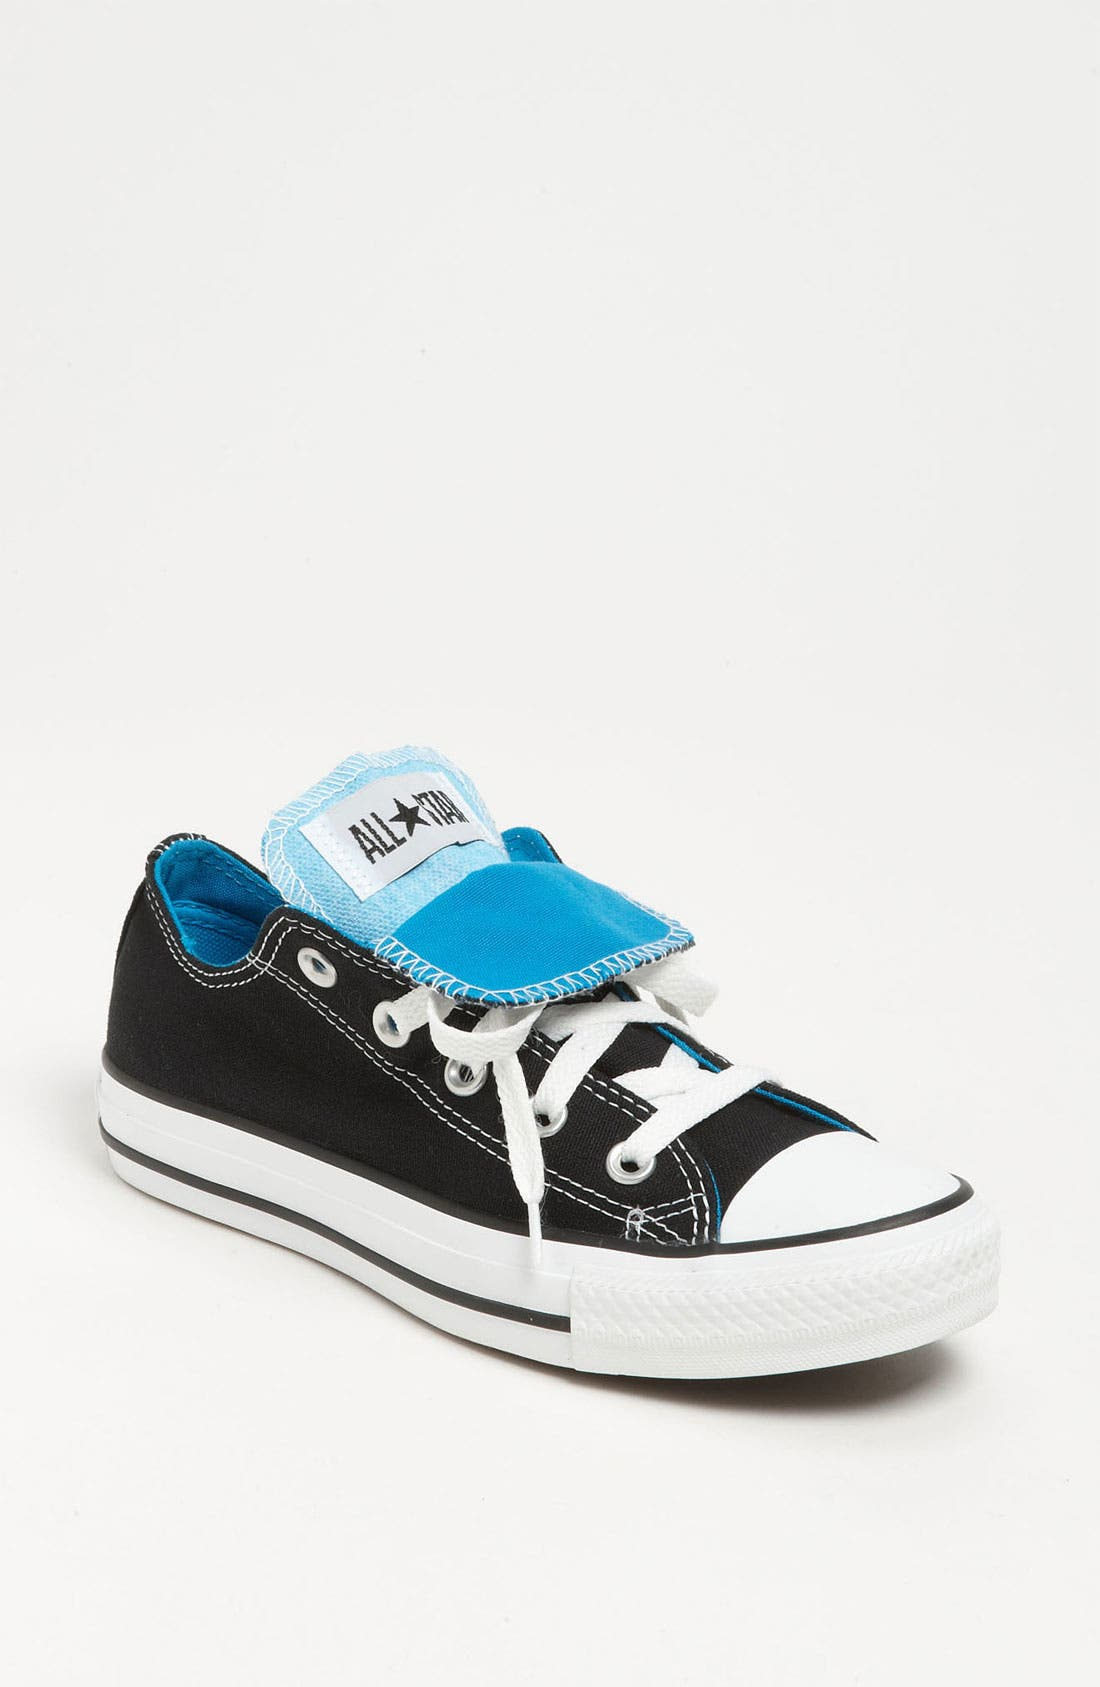 Alternate Image 1 Selected - Converse Chuck Taylor® All Star® Double Tongue Sneaker